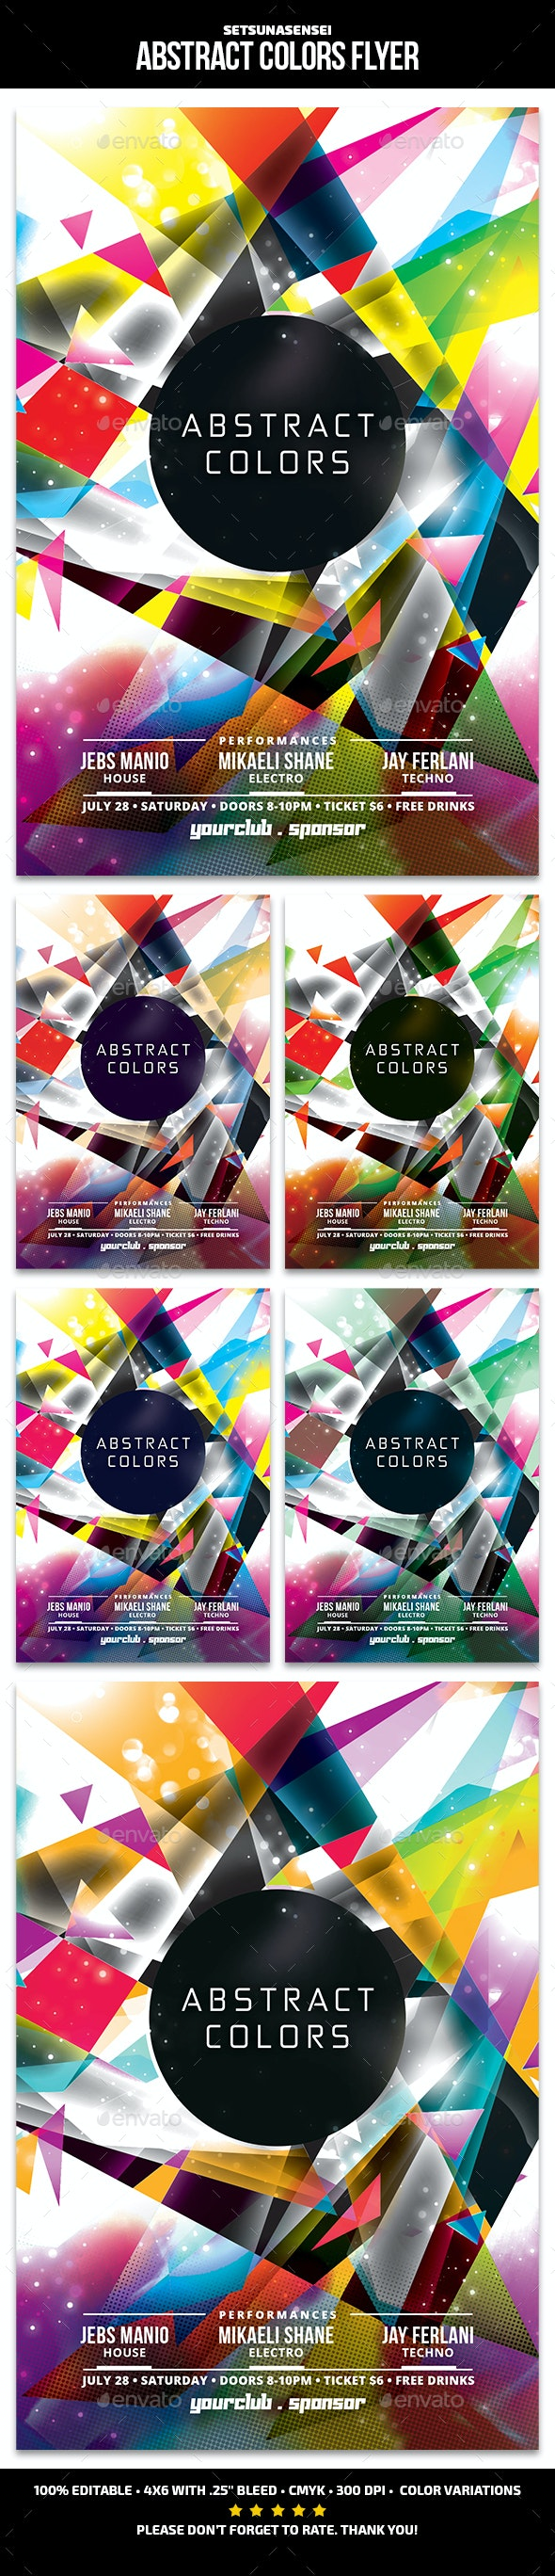 Abstract Colors Flyer - Clubs & Parties Events